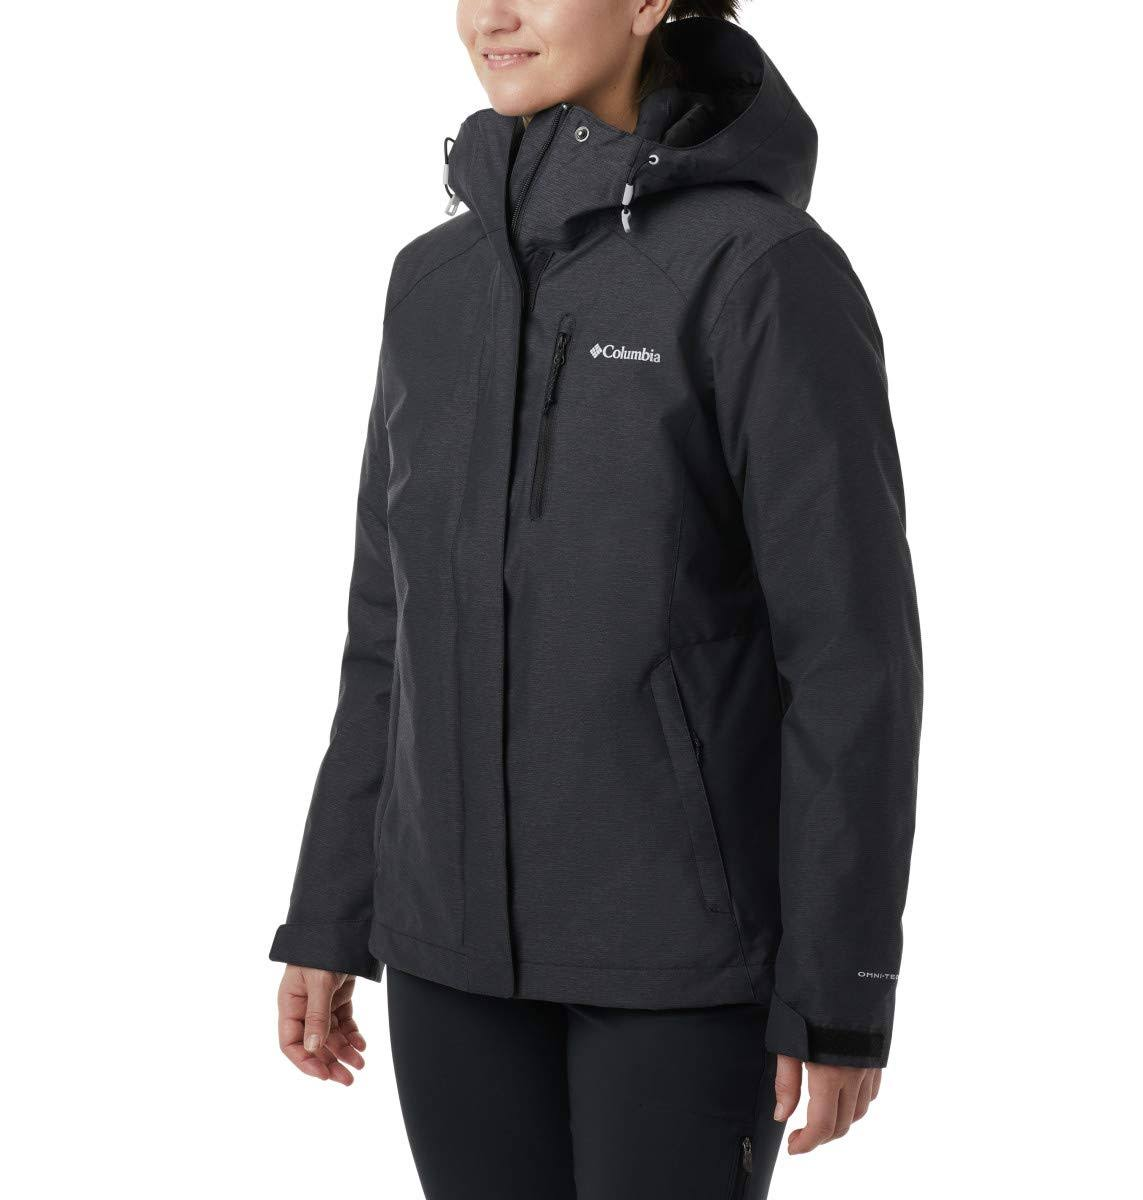 Columbia Women's Whirlibird IV Interchange Jacket - 3X - Black Crossdye